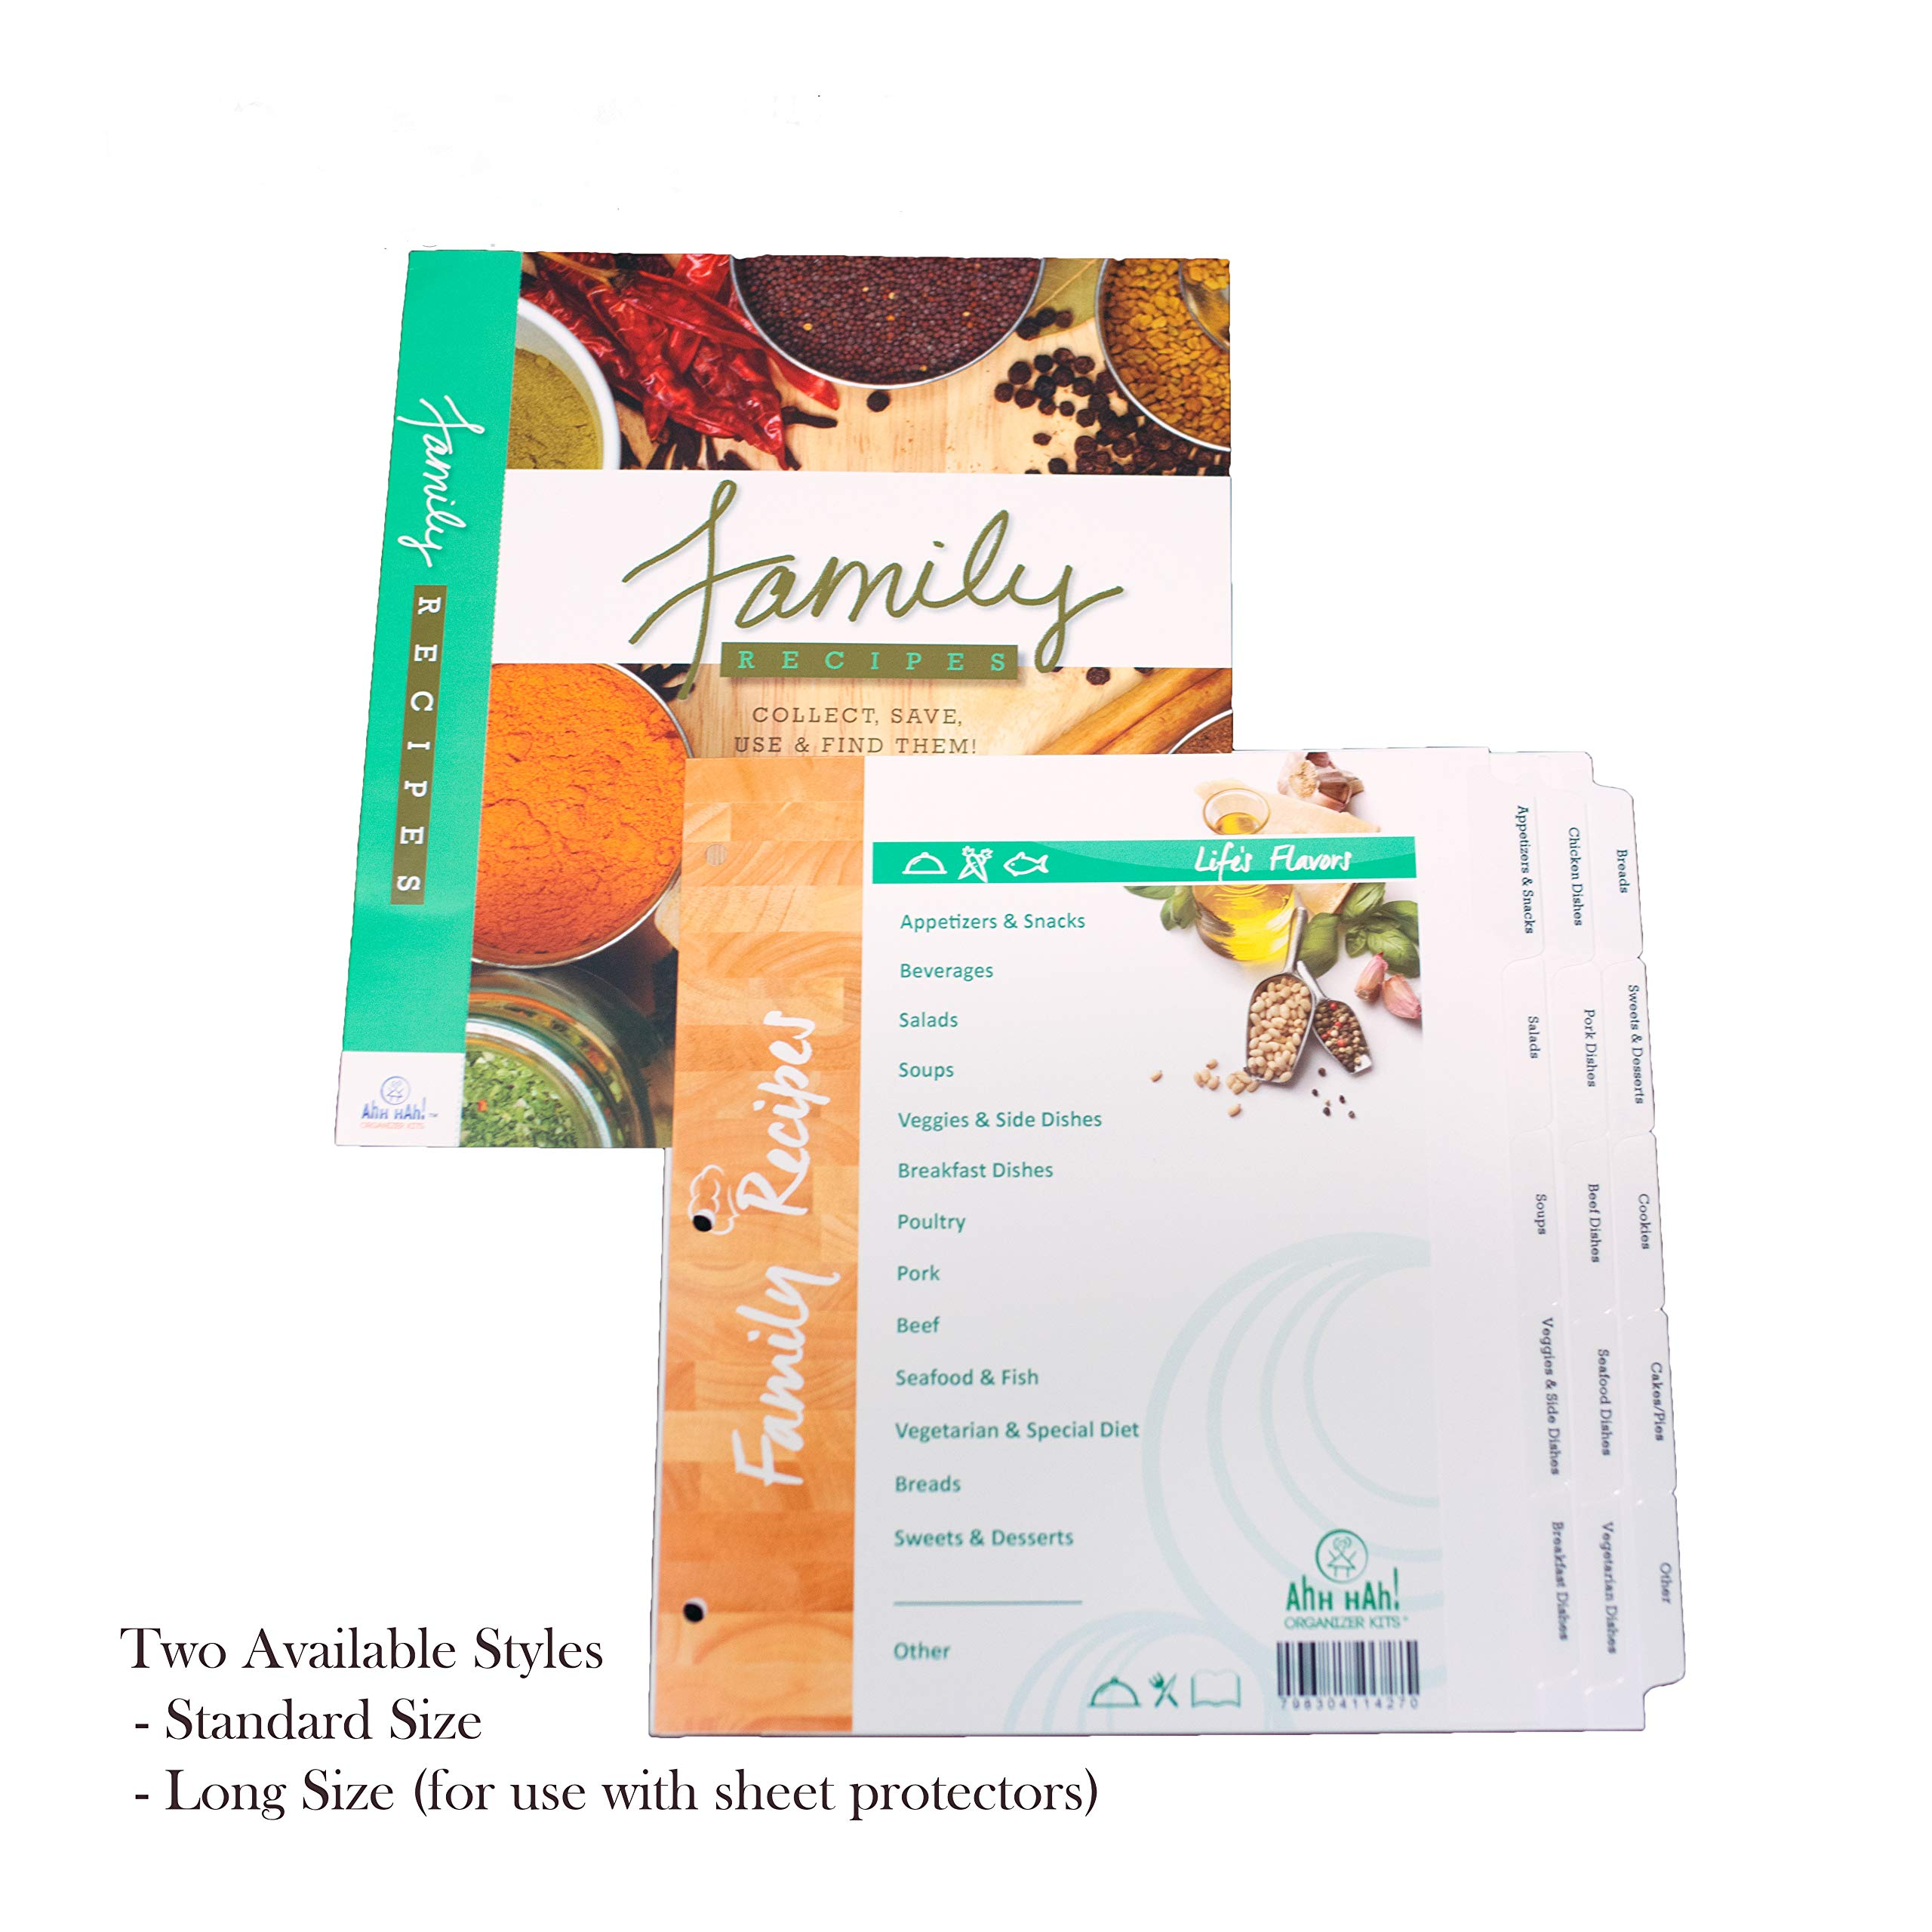 Ahh Hah! Family Recipe Organizer Kits: LONG Index Tabs for Three-ring Binder with Cover